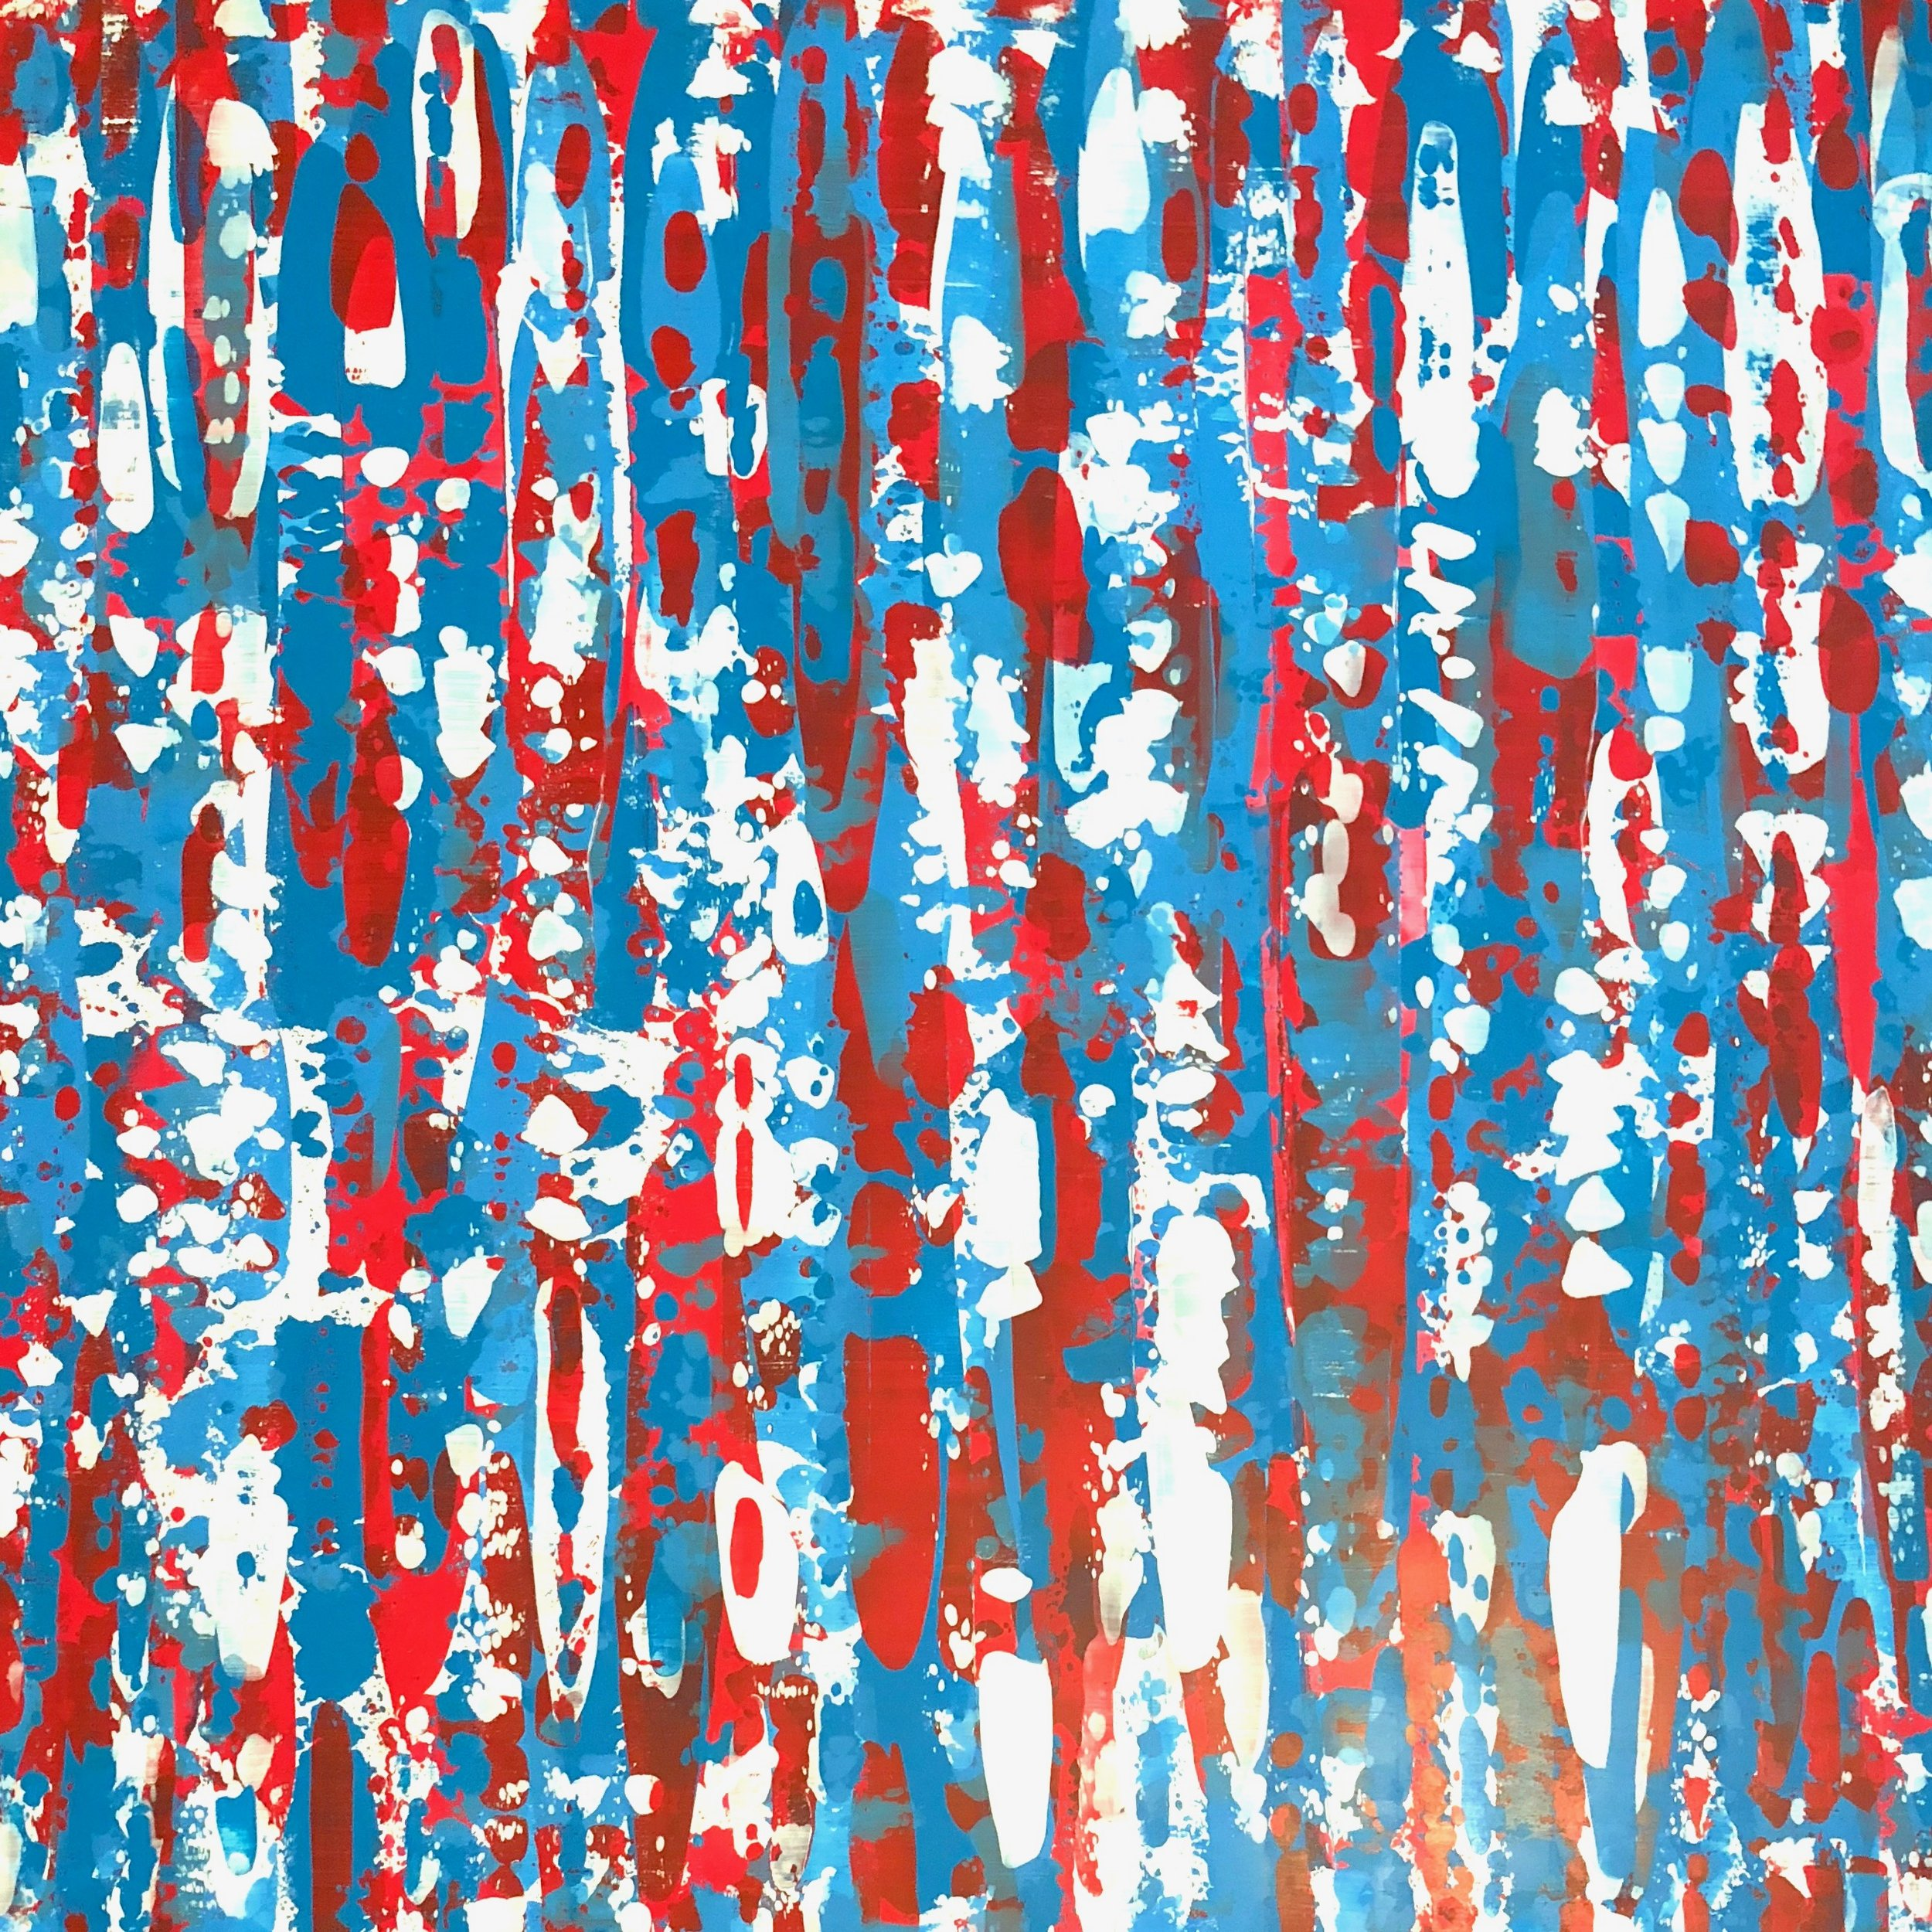 RED, WHITE & BLUE - 37X37 ACRYLIC ON A WOOD BIRCH PANEL WITH A WHITE FLOATER FRAME. (INQUIRE FOR PRICING AND AVAILABILITY)